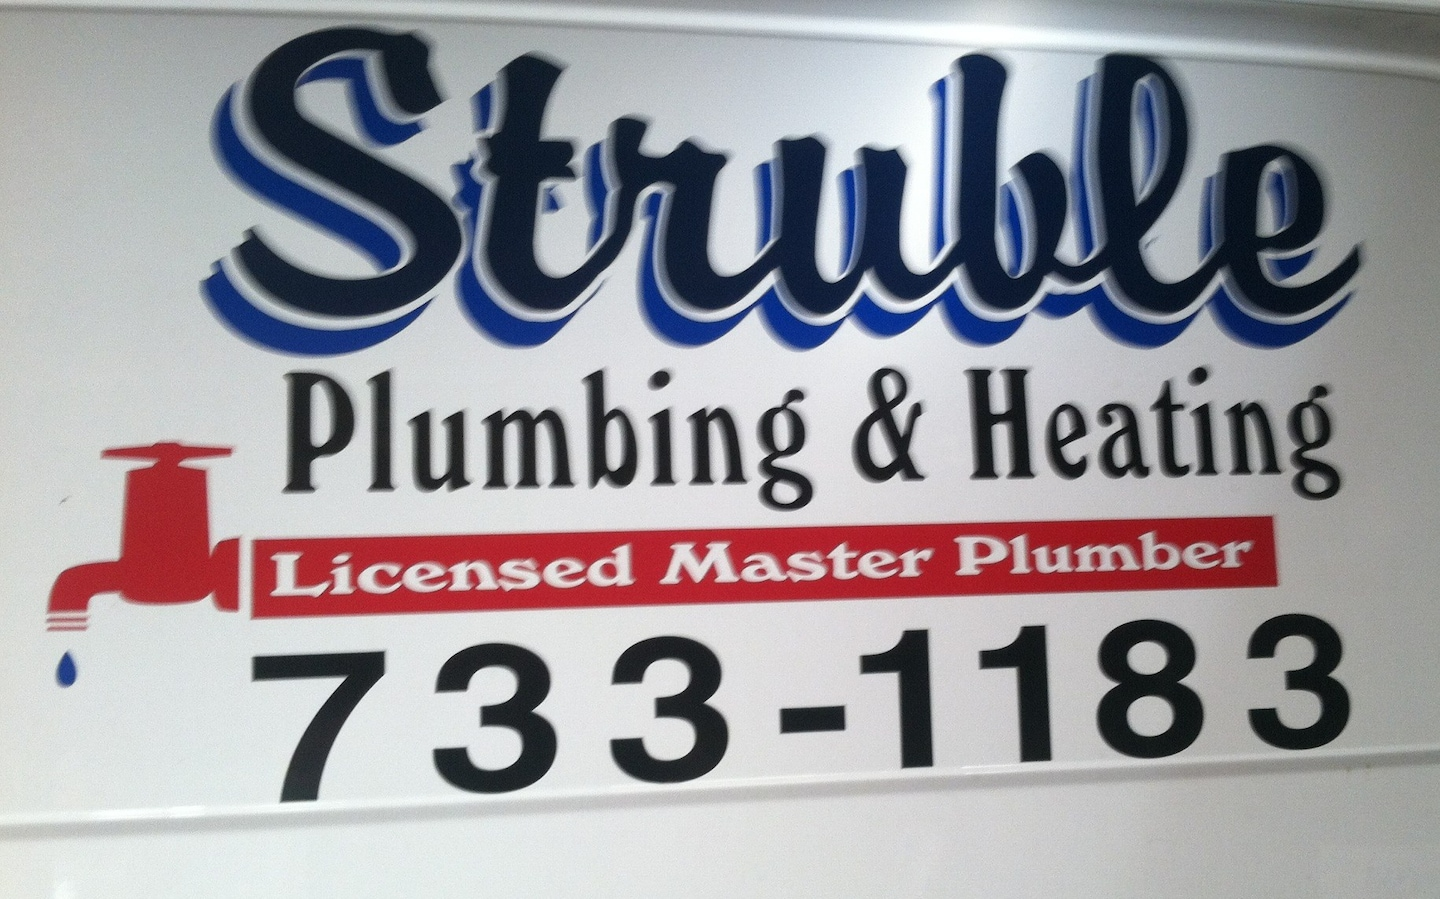 Struble Plumbing, Heating & Air Conditioning Inc.